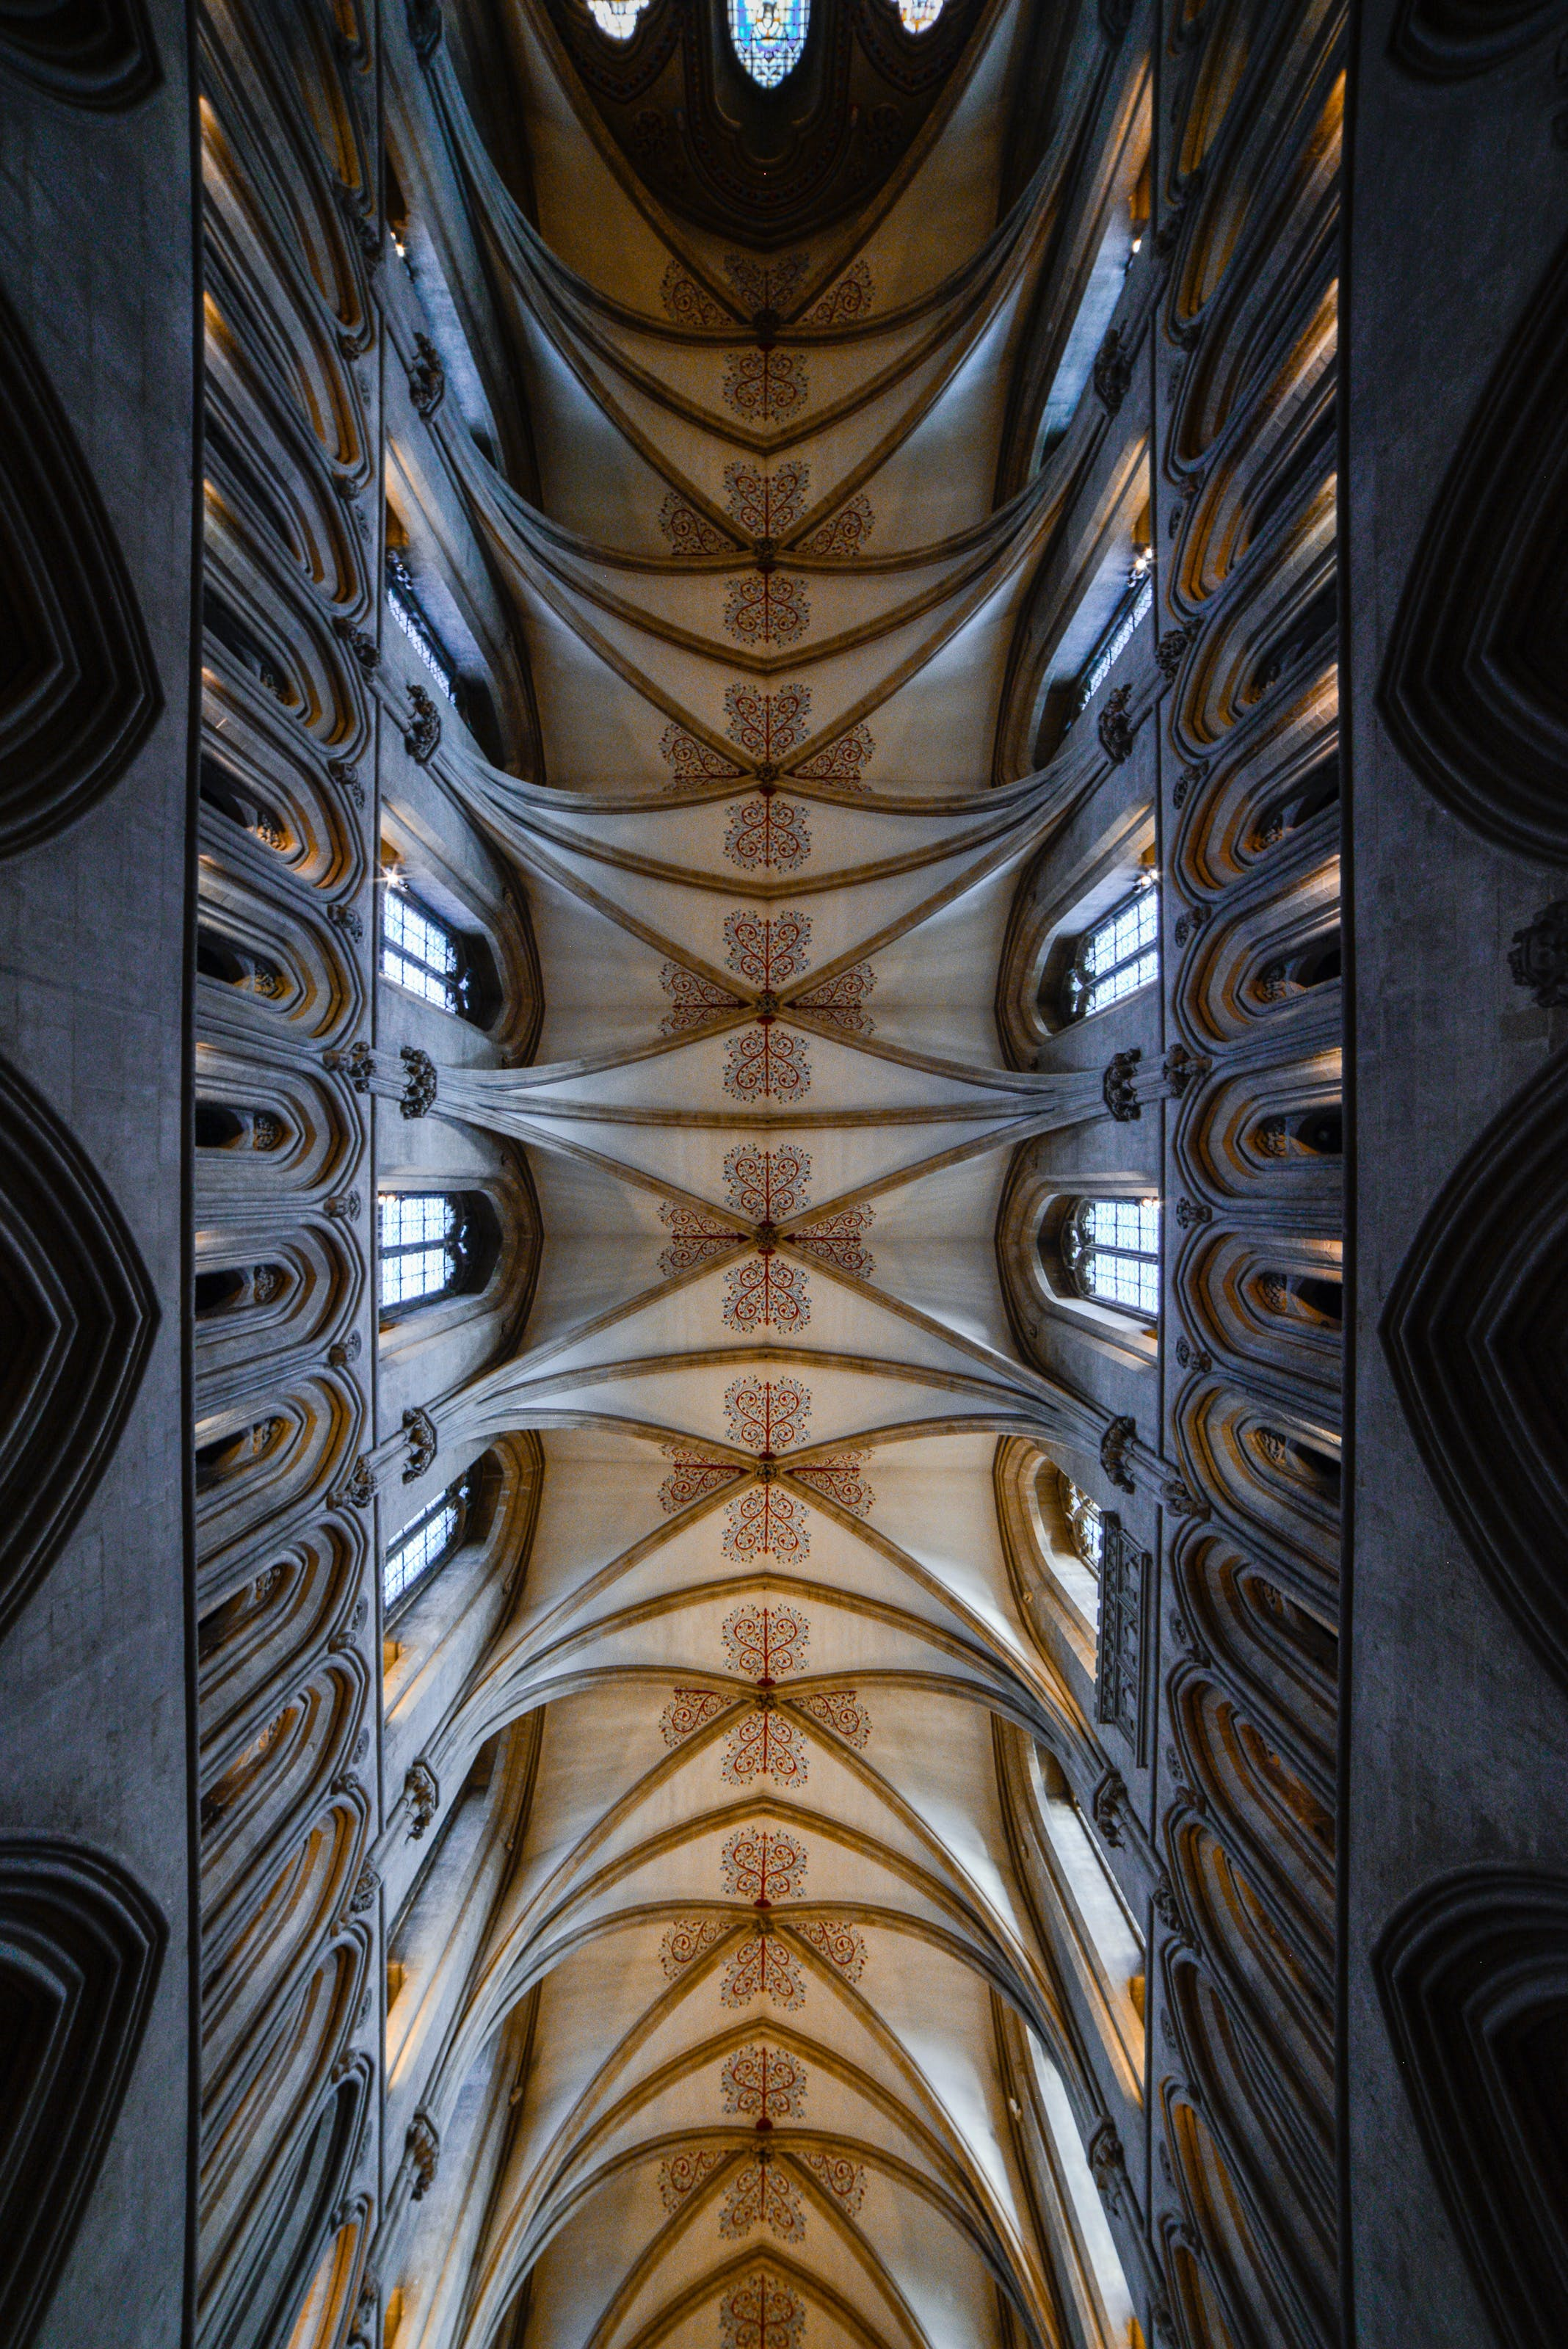 Free stock photo of arched window, ceiling, ceiling lights, church